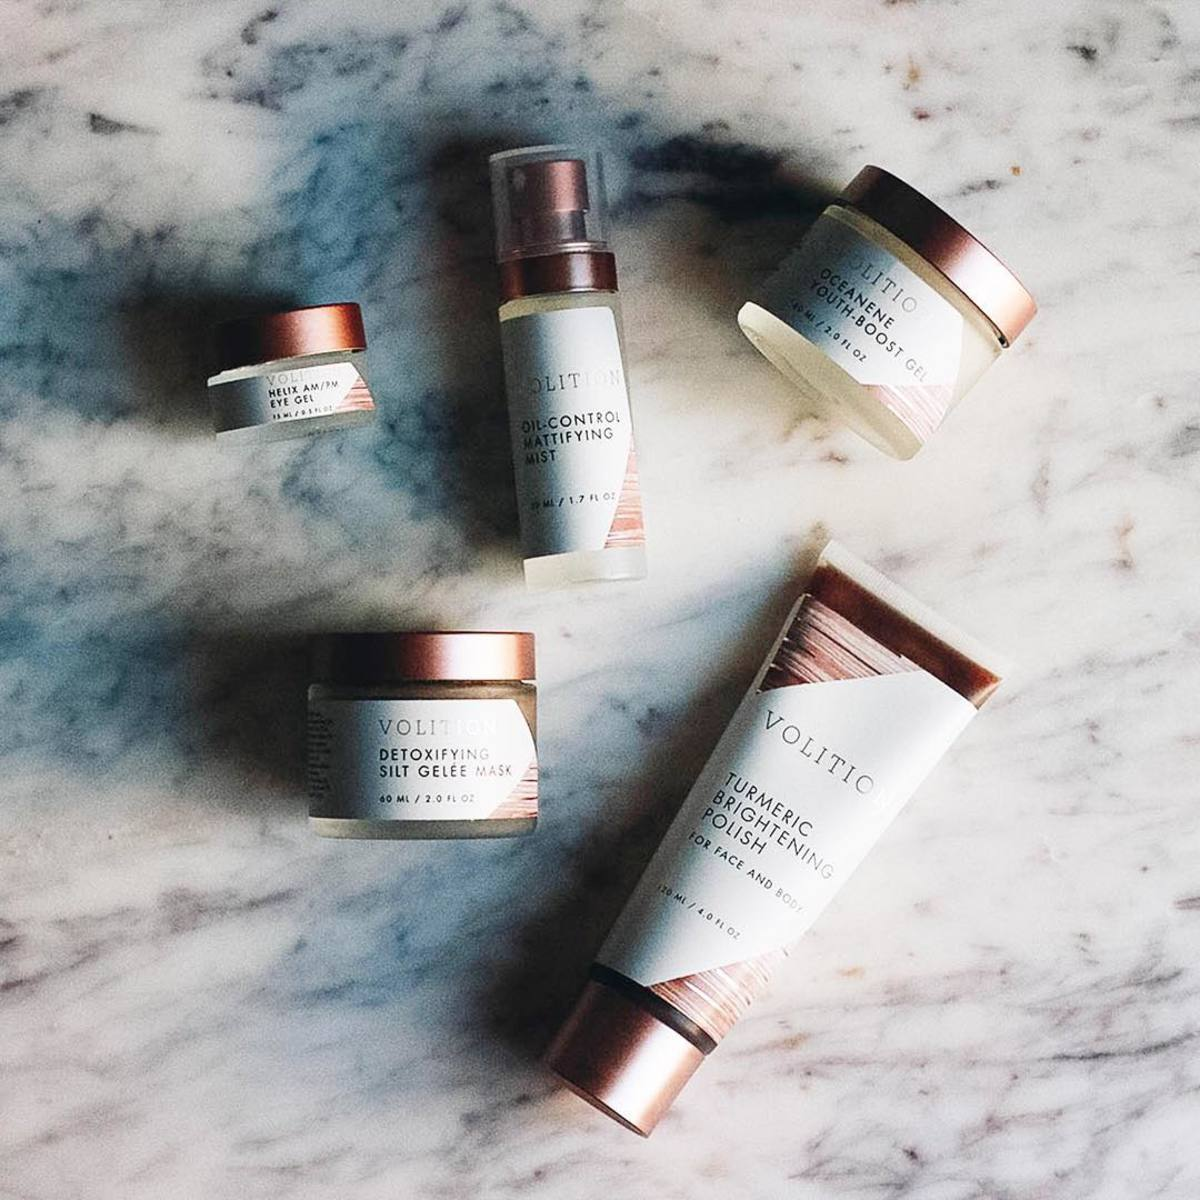 Volition Beauty. Photo: @volitionbeauty/Instagram